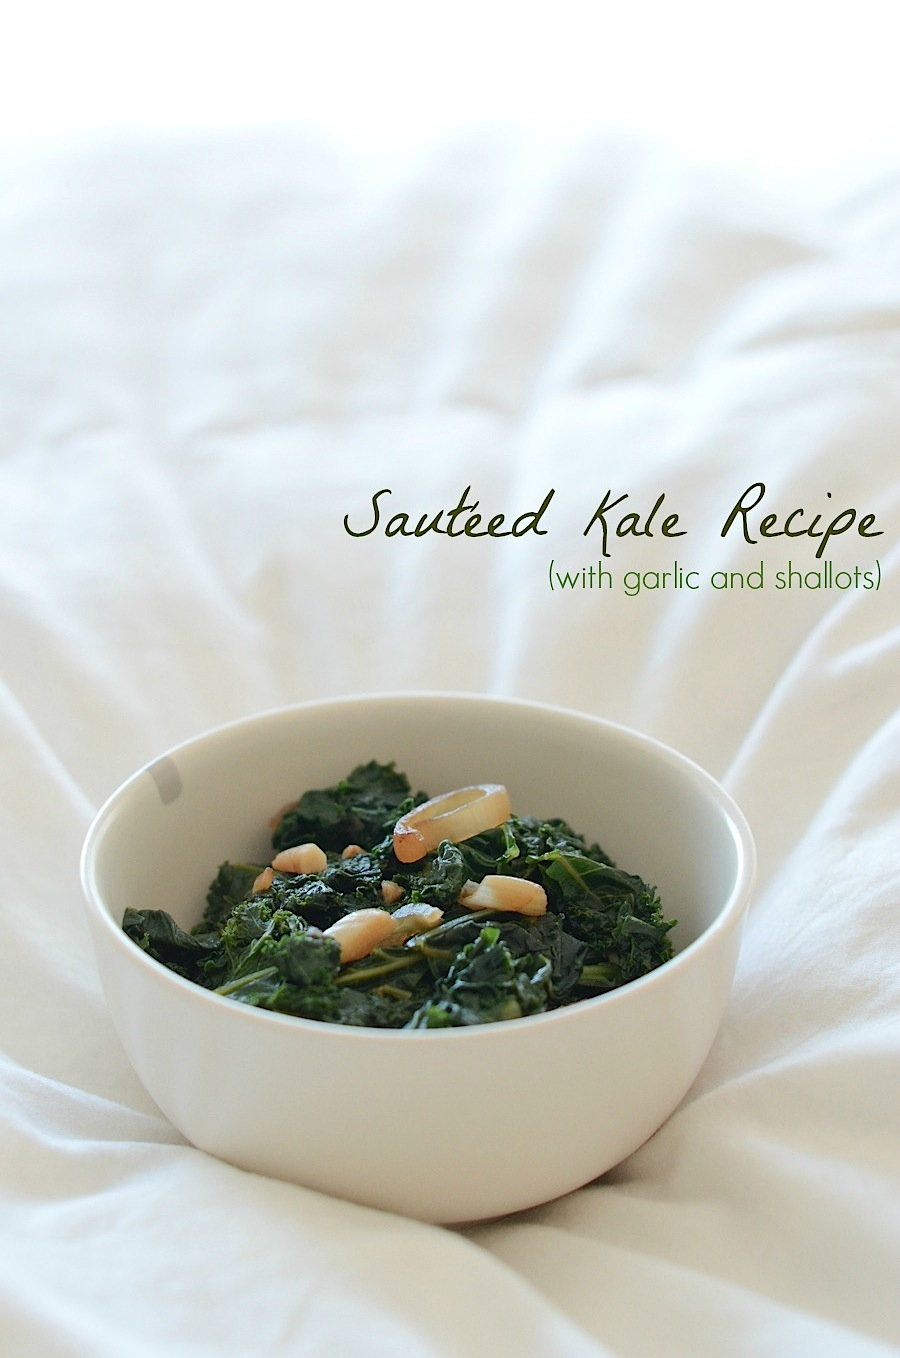 Sautéed Kale with Garlic and Shallots Recipe - The Chic Life